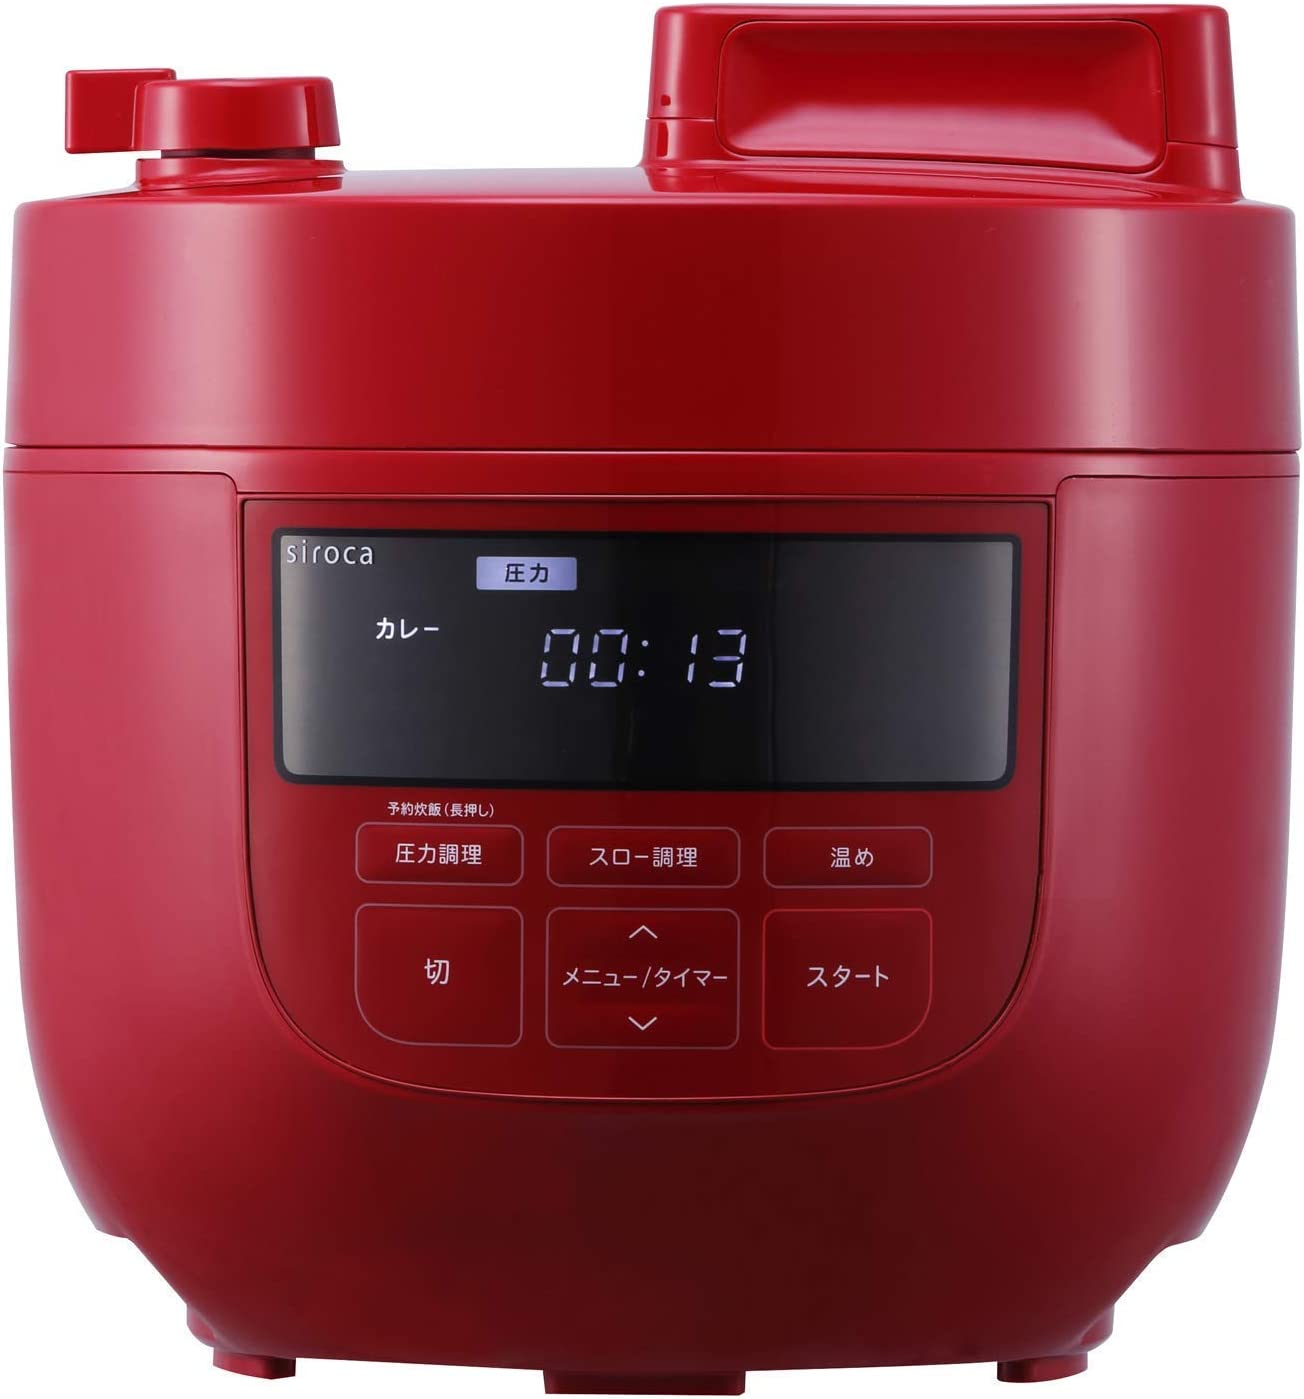 Max 44% OFF siroca Electric Pressure Cooker 4L RED Animer and price revision Do SP-4D151RD 【Japan